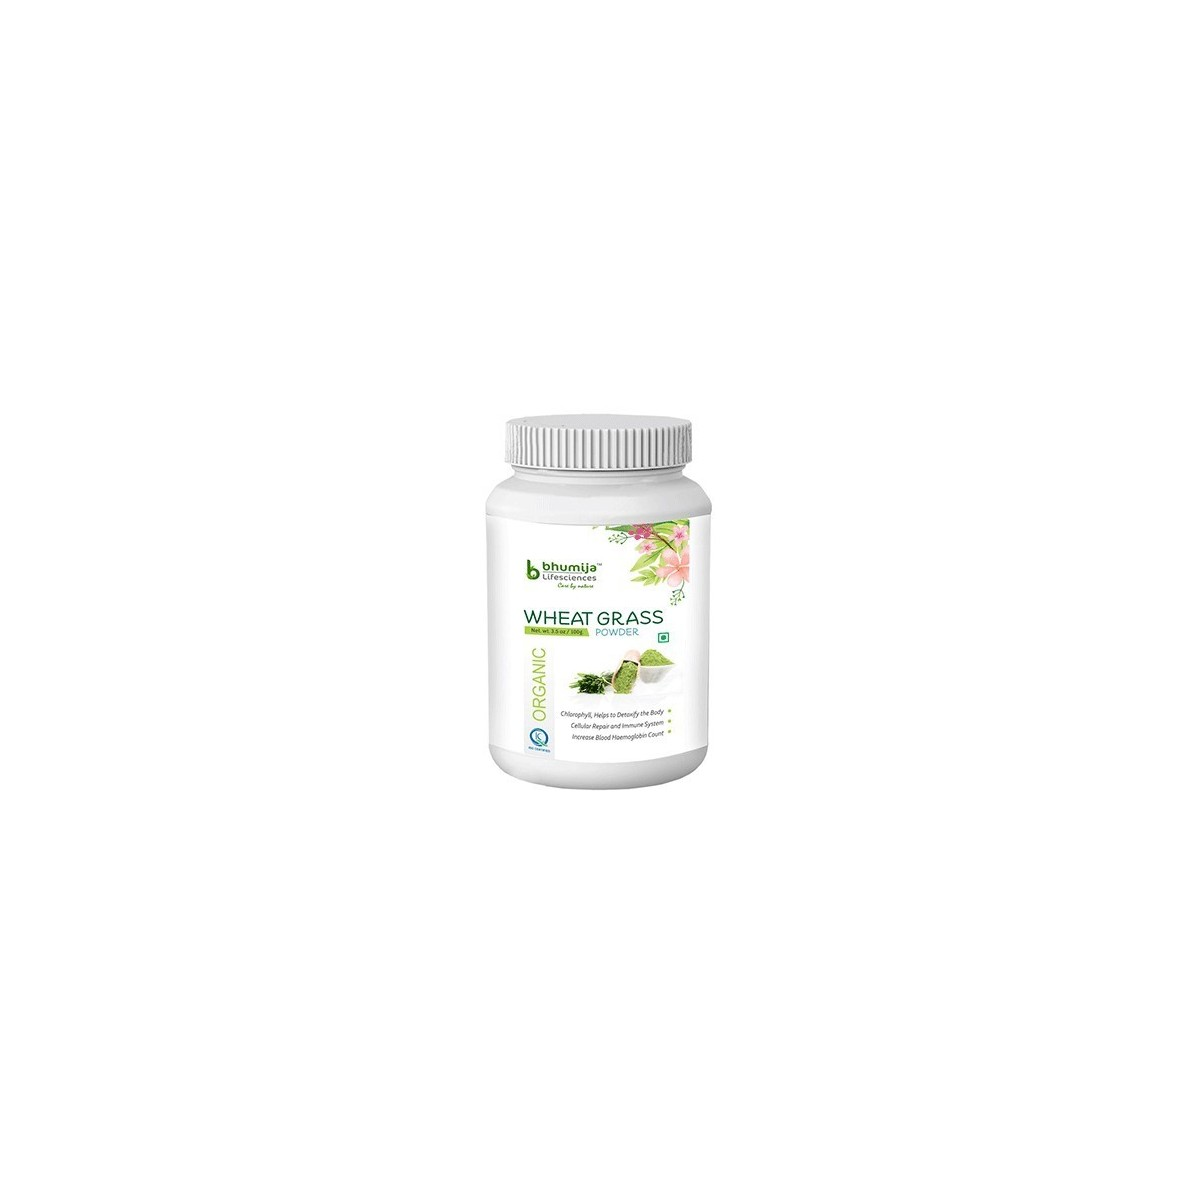 Bhumija Lifesciences Organic Wheatgrass Powder, 100G